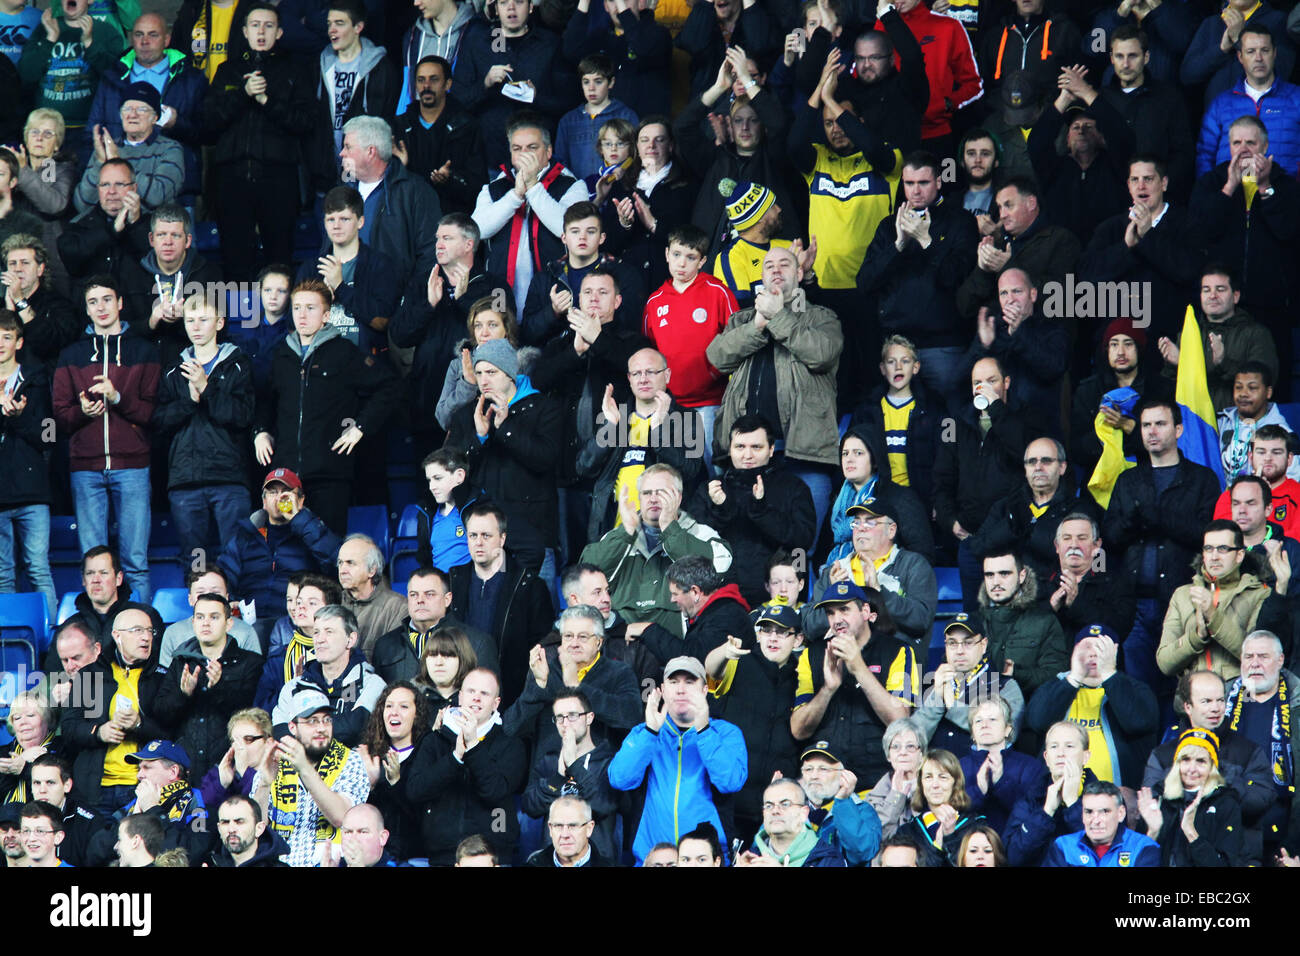 Kassam Stadium, Oxford Job name: sport Notes: FOOTBALL: Oxford United v AFC Wimbledon Pictured here is Oxford fans. Stock Photo